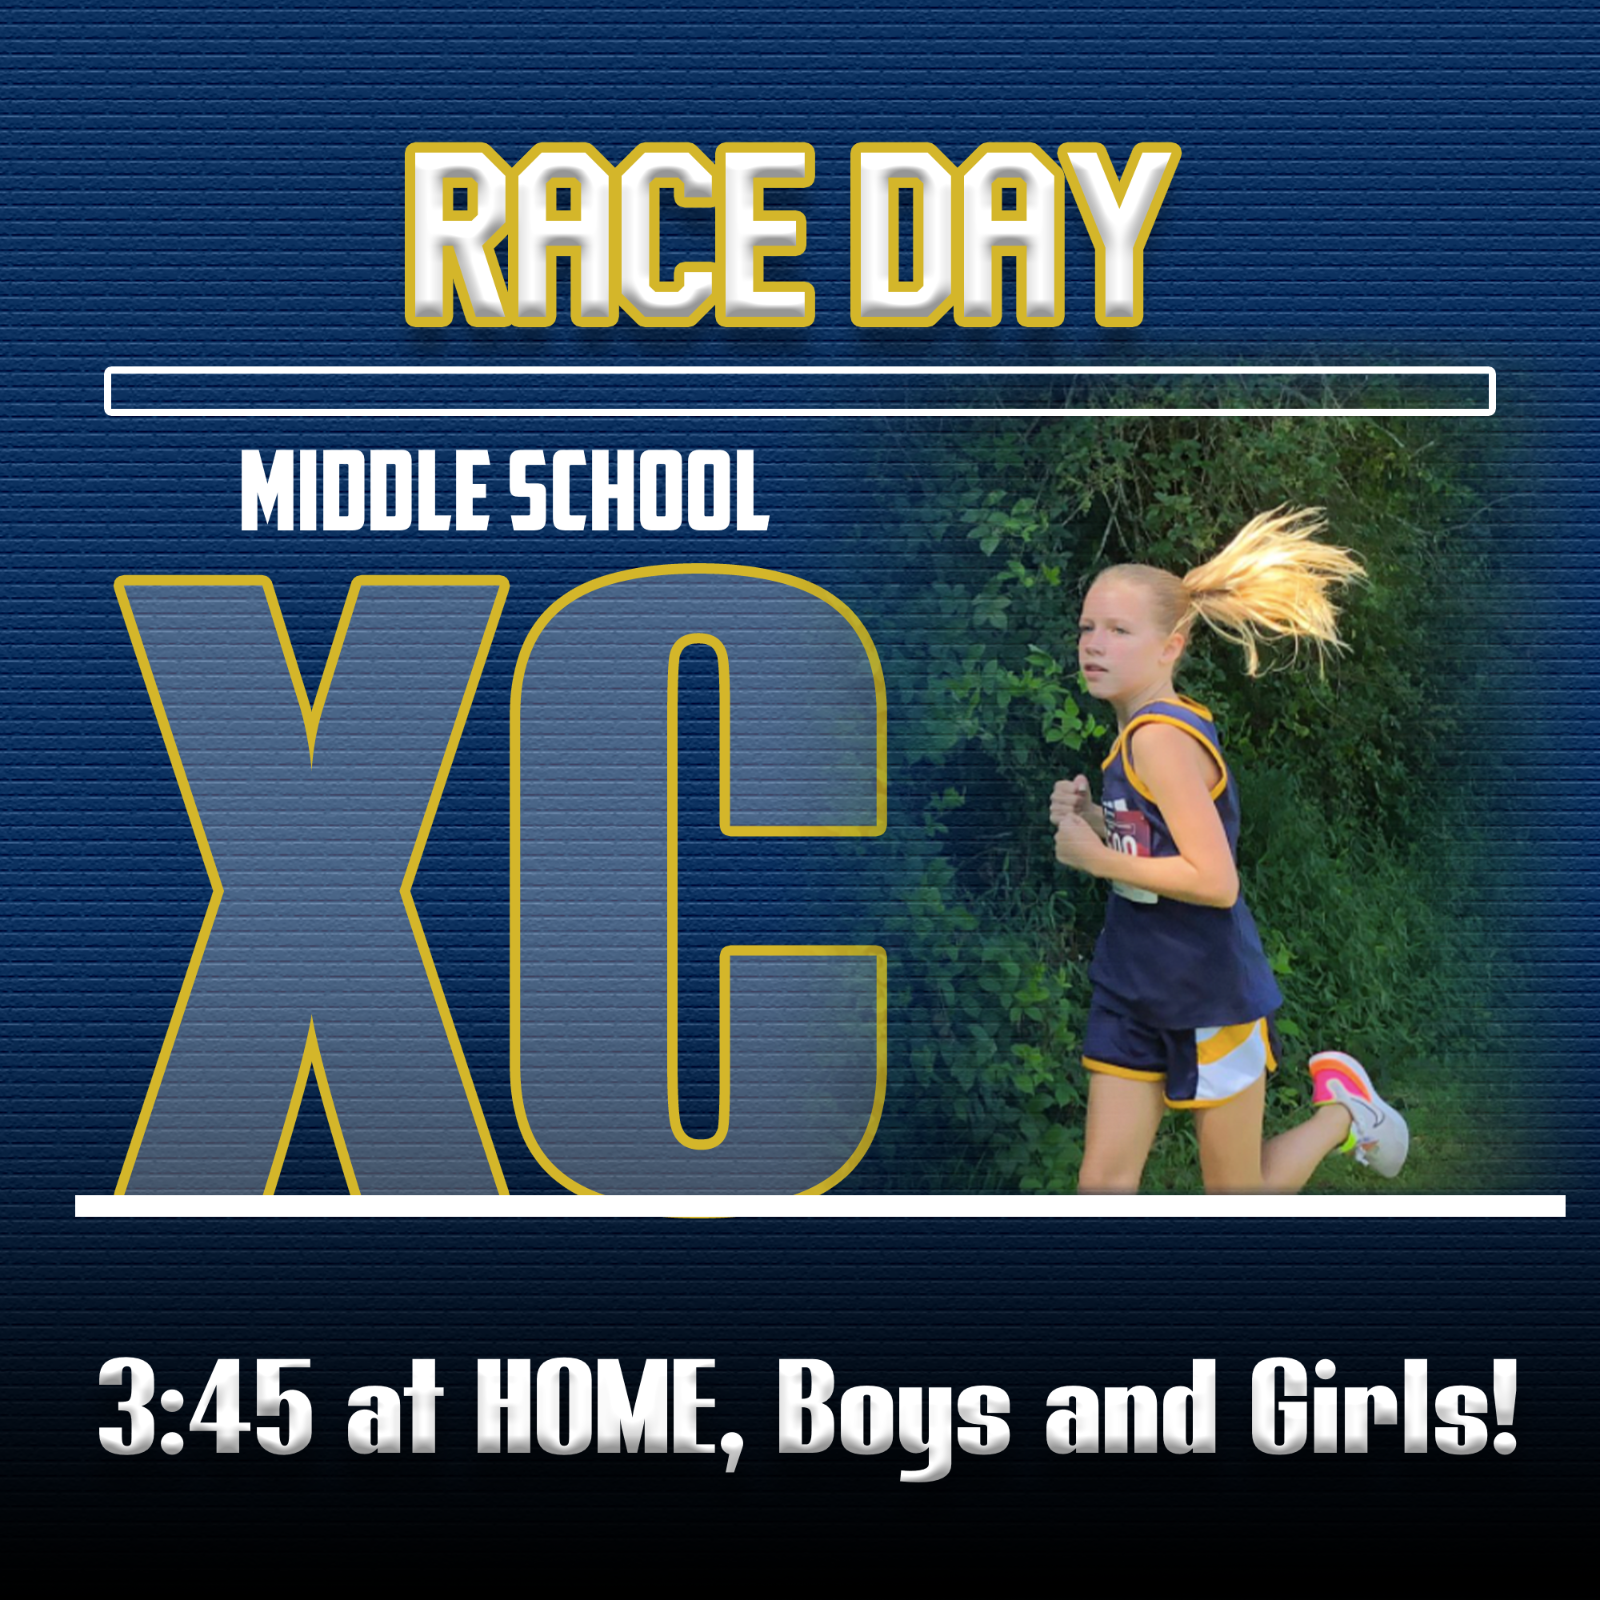 Middle School Girls and Boys Cross Country race at HOME!